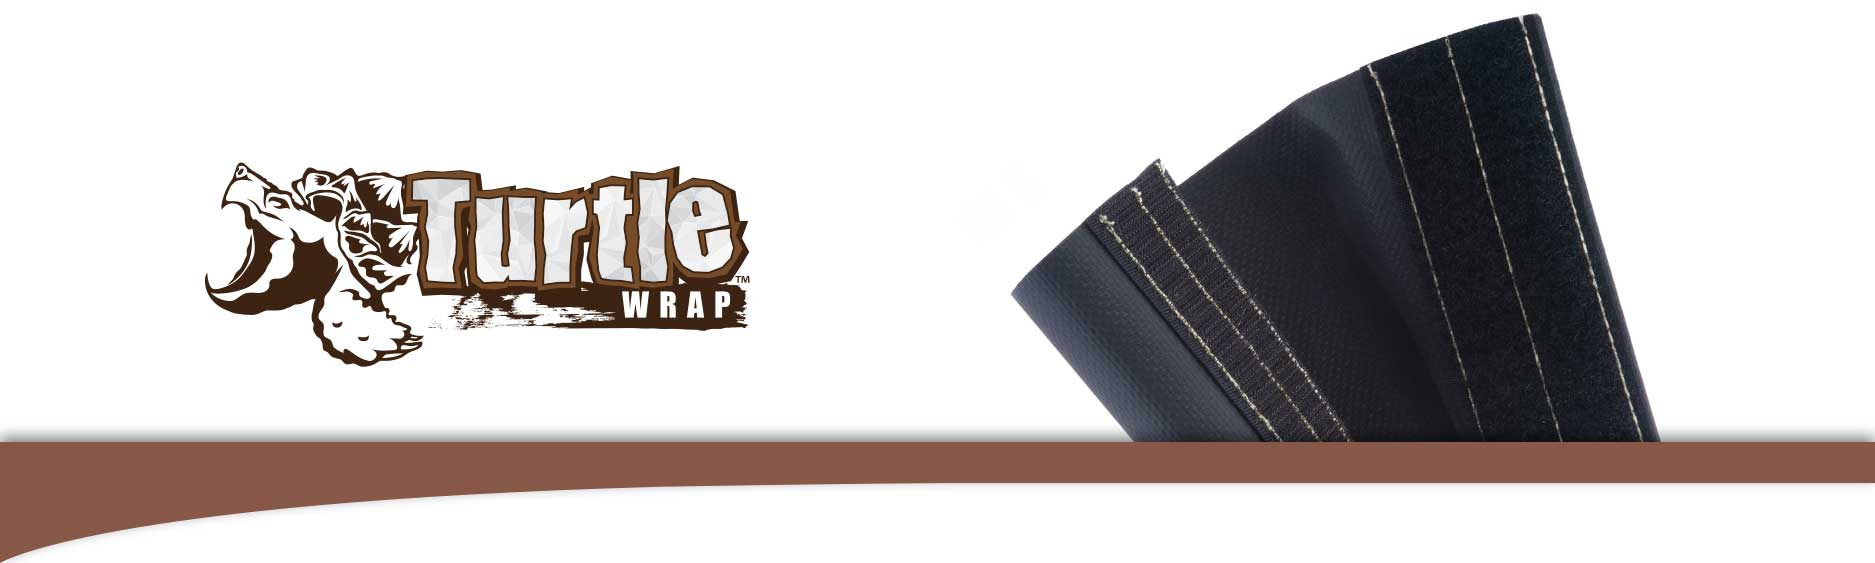 Turtle-Wrap Heavy Duty Wraparound Sleeving